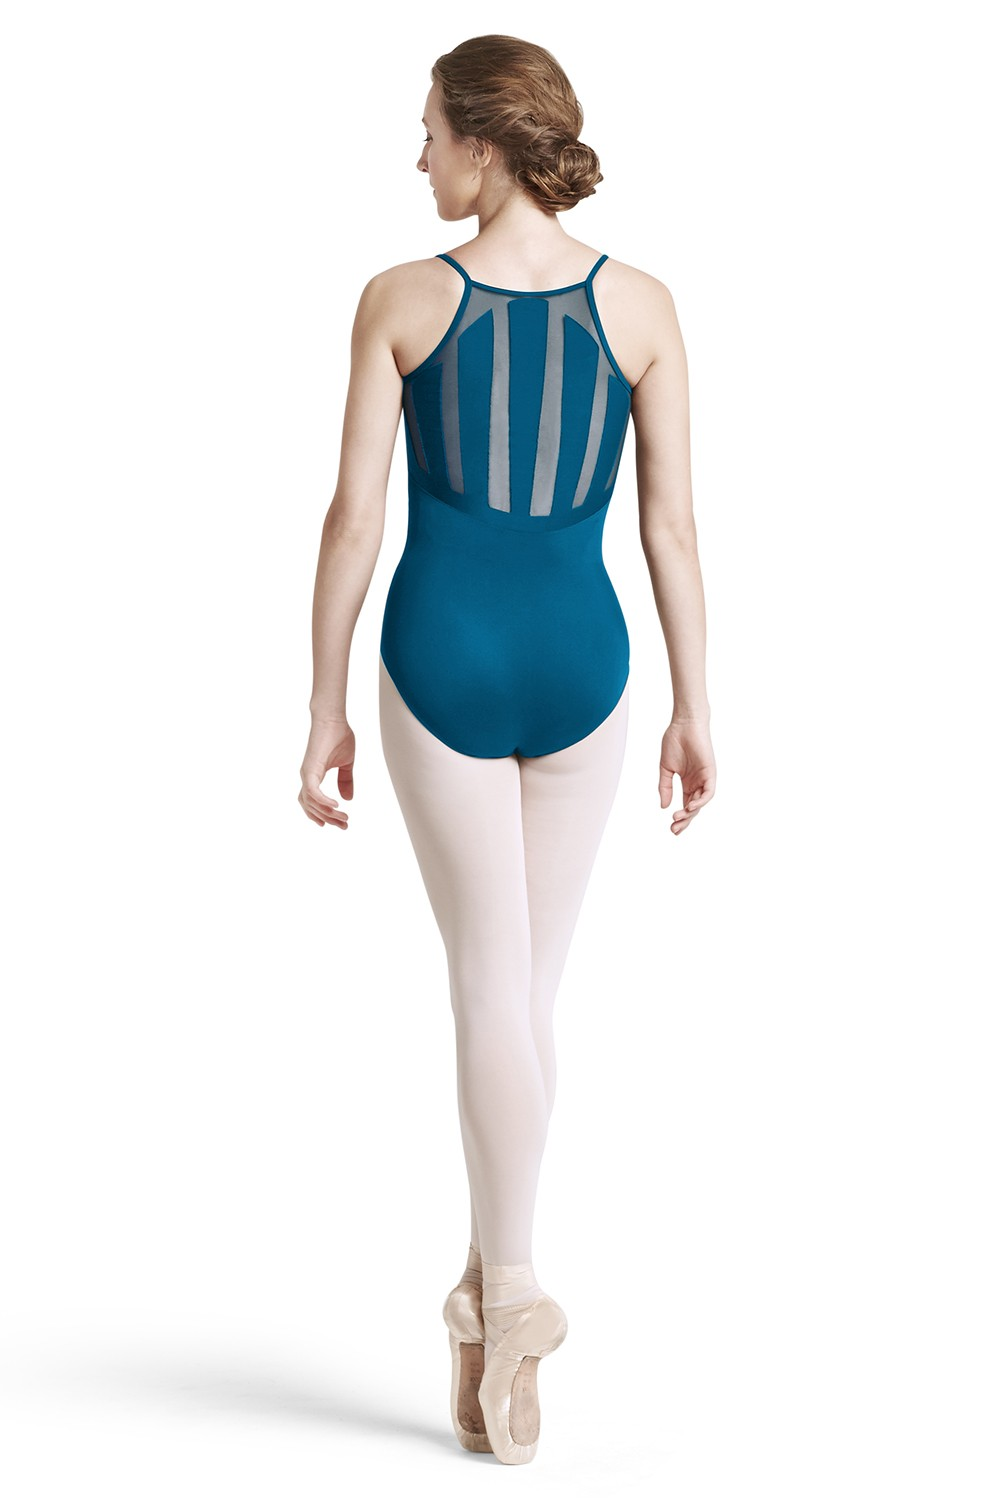 Nalina Women's Dance Leotards